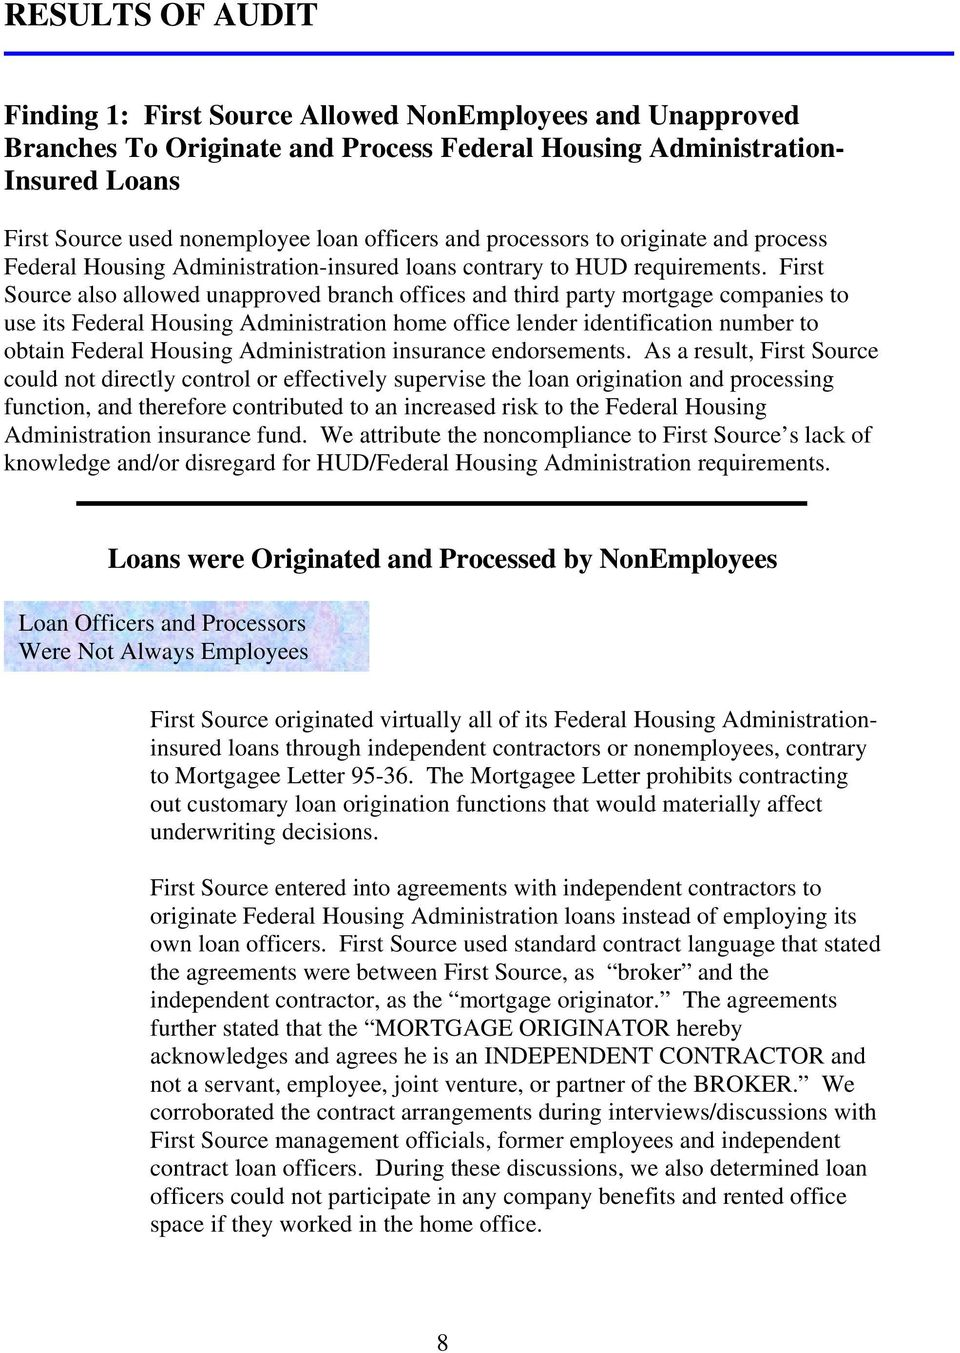 First Source also allowed unapproved branch offices and third party mortgage companies to use its Federal Housing Administration home office lender identification number to obtain Federal Housing